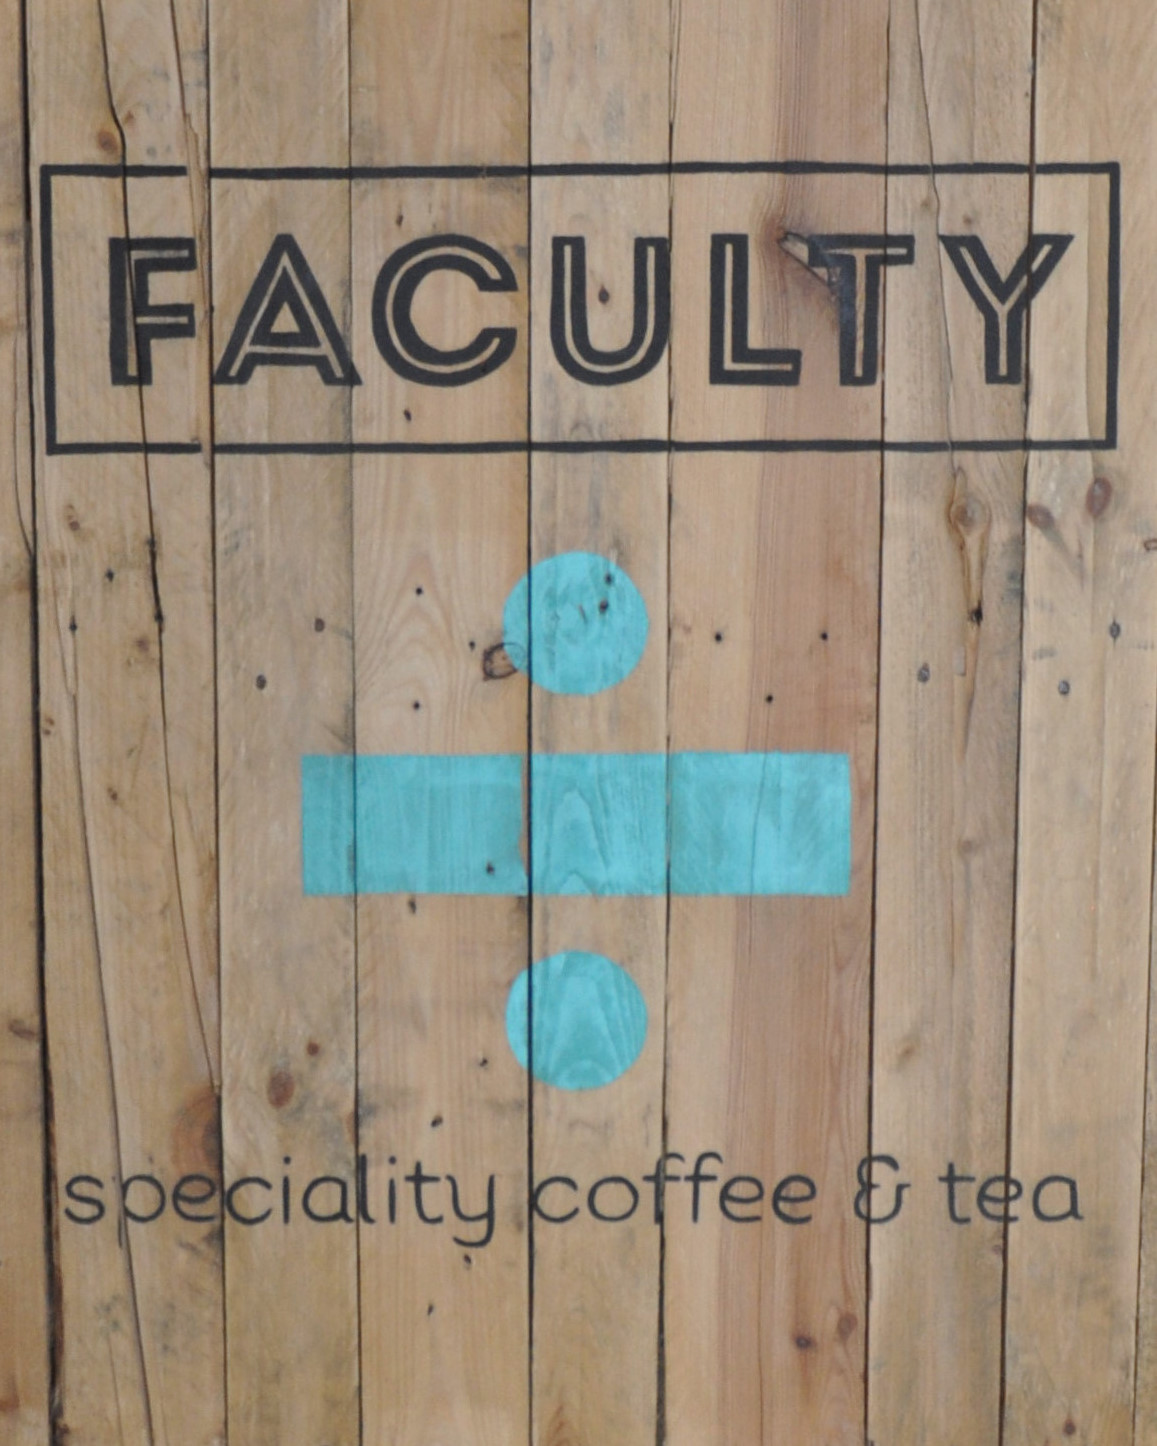 """A series of vertical wooden boards with the words """"Faculty"""" and """"speciality coffee & tea"""" written horizontally across them, with a blue division sign in the centre."""